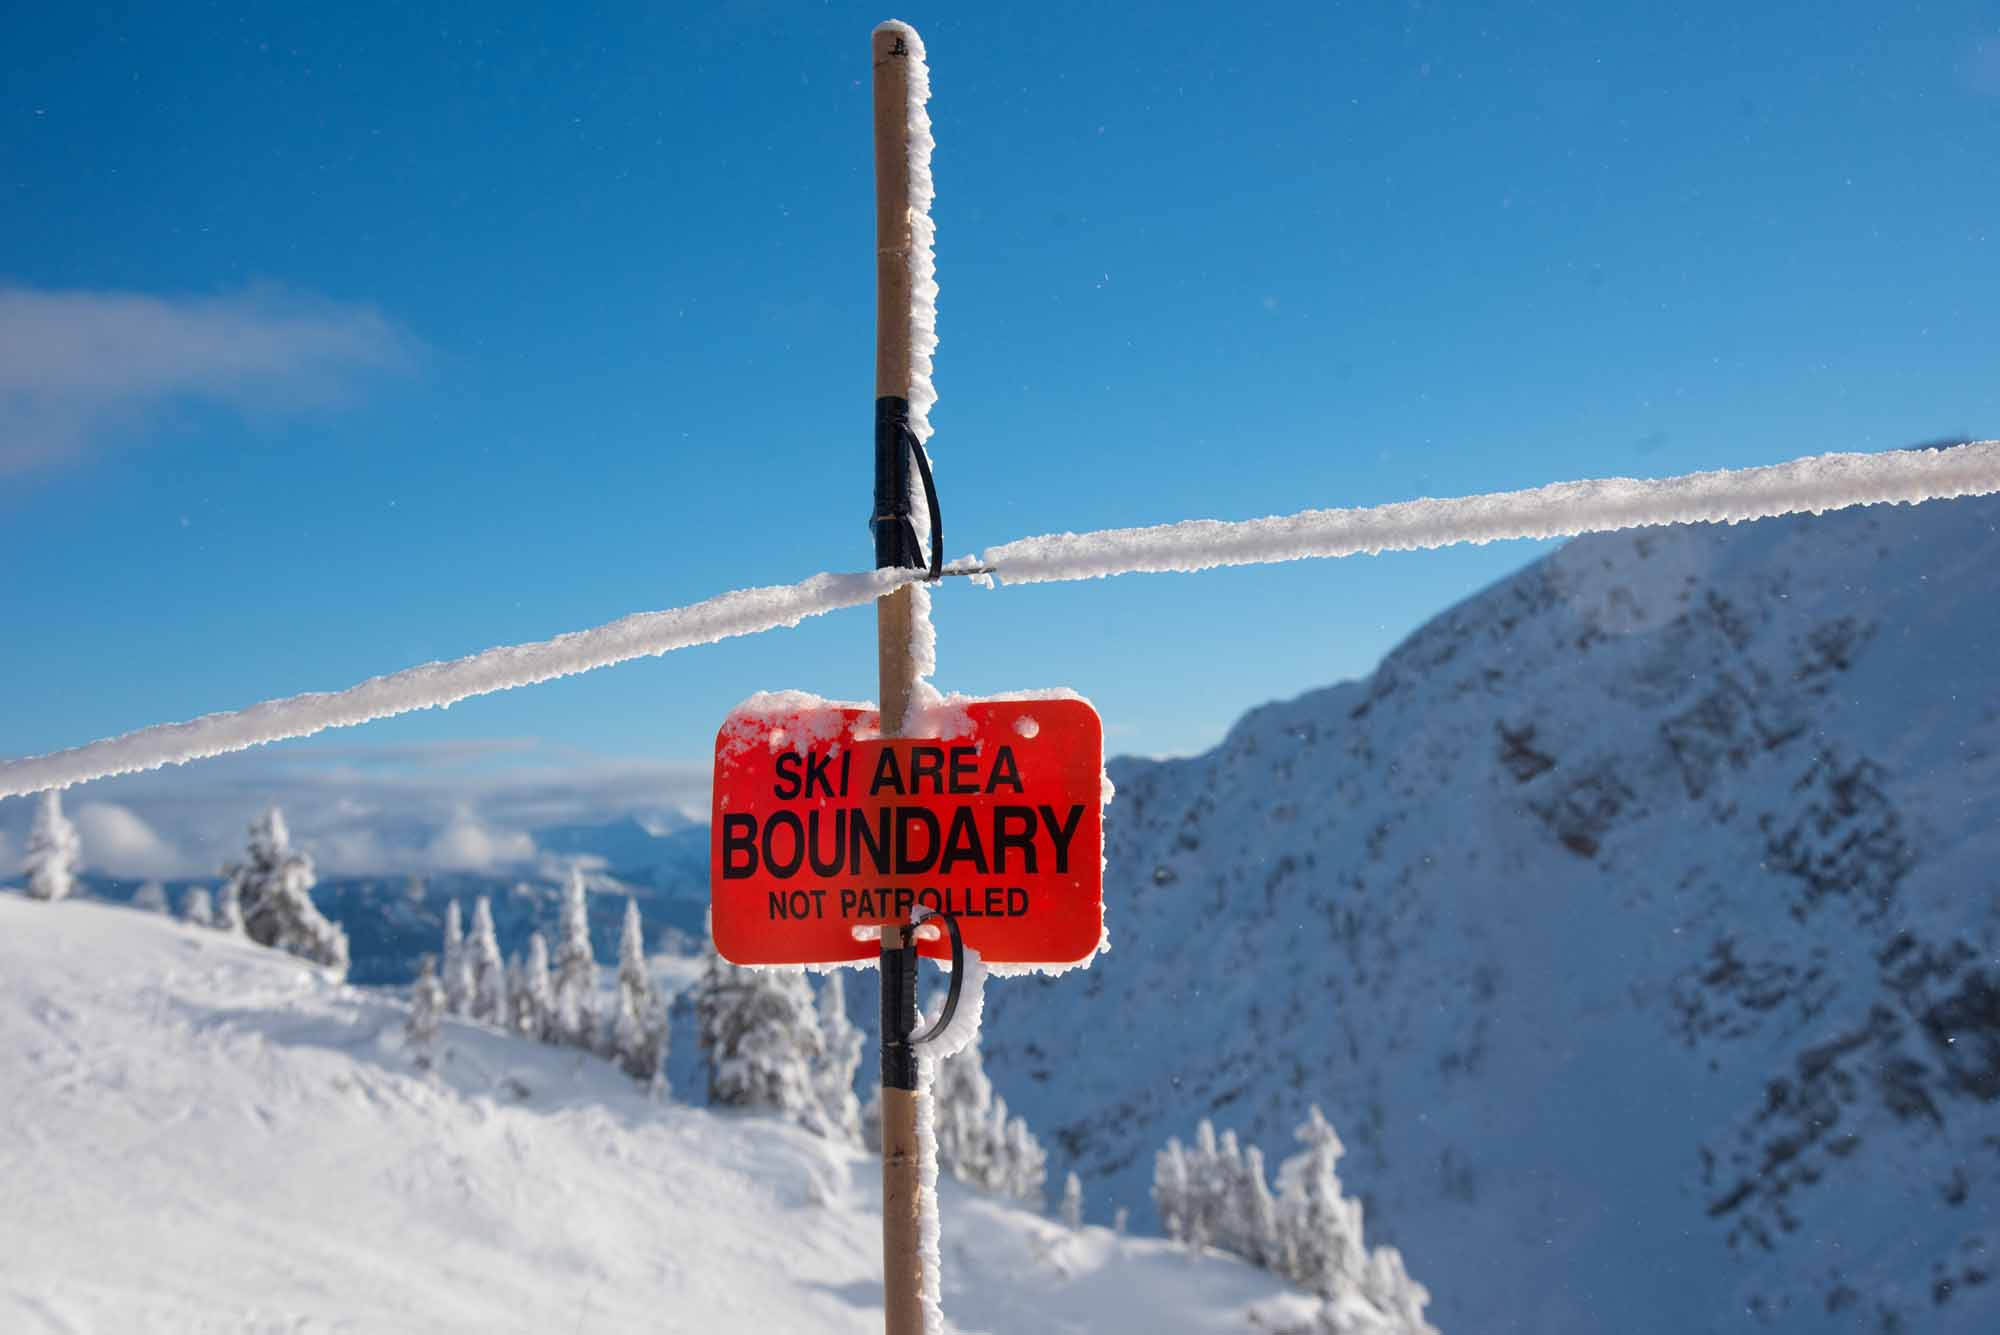 Into-the-Great-White-Open-Moms-Shred-Golden-BC-Allison-Kennedy-Davies-Kicking-Horse-boundary-sign